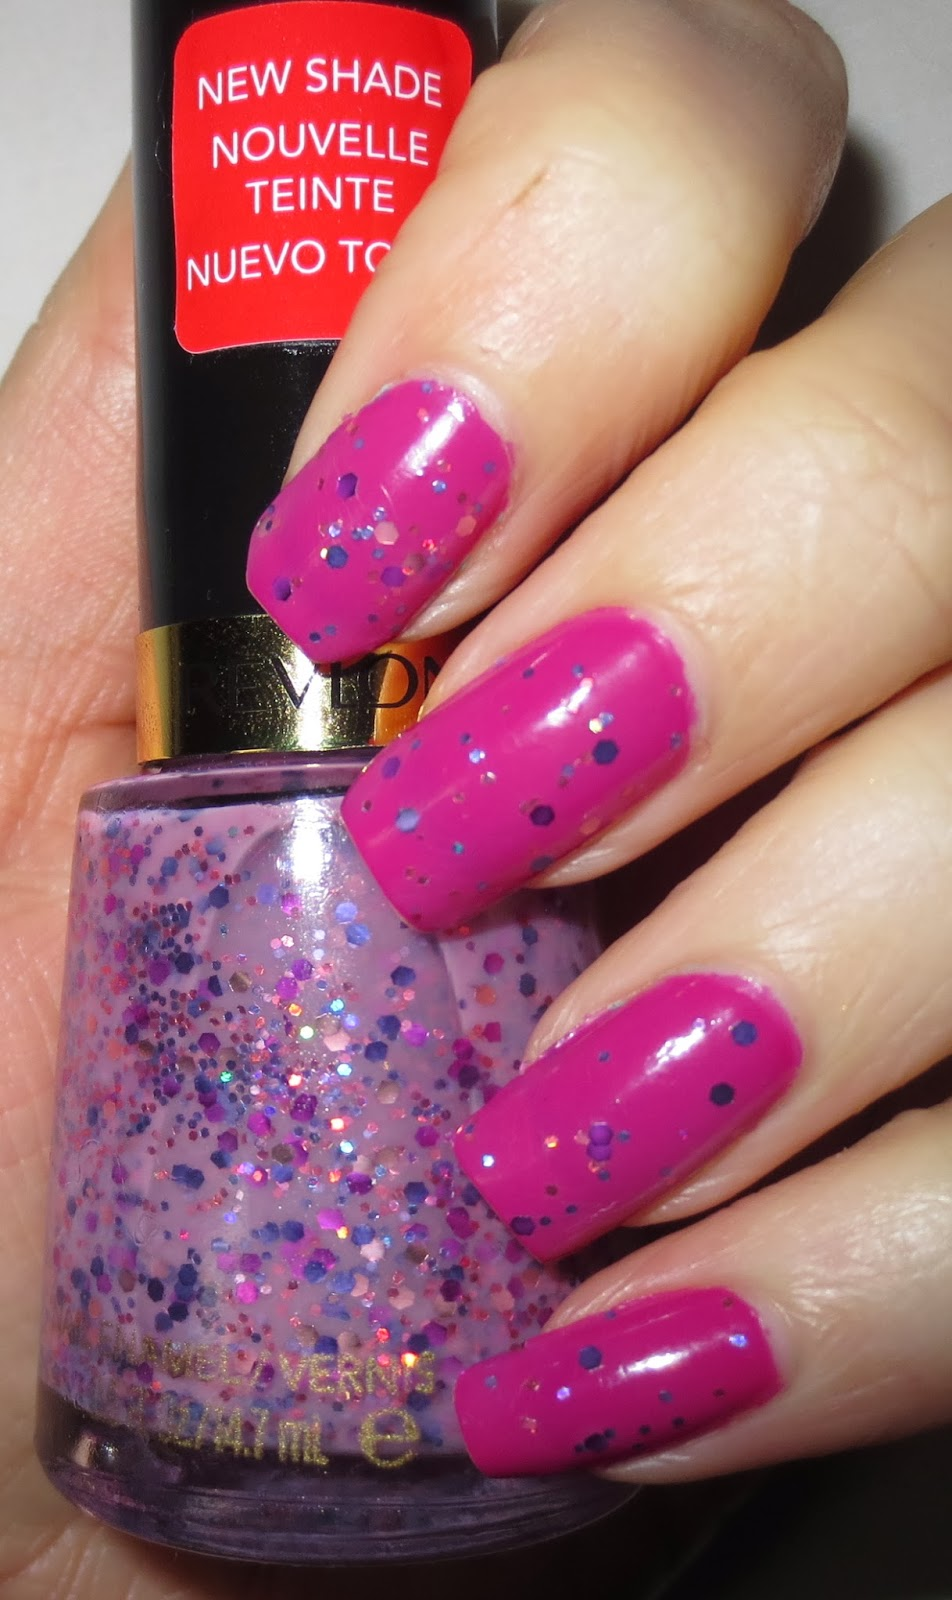 Revlon Nail Enamel in Girly